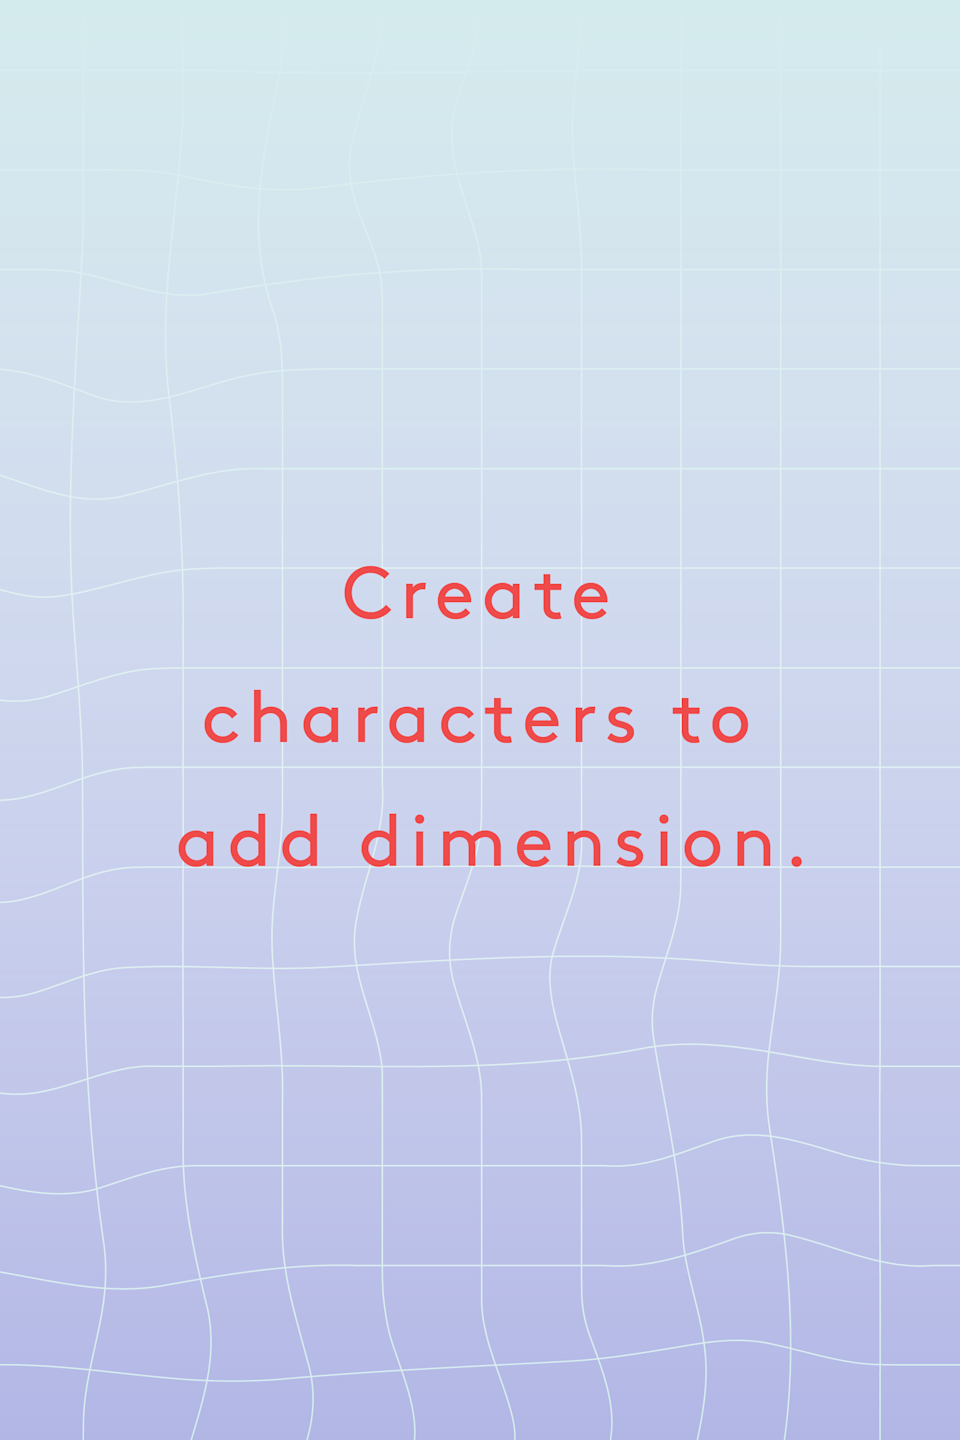 """<p><strong>Create characters to add dimension.</strong></p><p>""""Invent a former roommate who had loud, vigorous sex, and put those filthy, pleading words into a story about the night she did something crazy — like sleep with two people at the same time.""""</p><p>-<a href=""""https://kathleenkbooks.com/"""" rel=""""nofollow noopener"""" target=""""_blank"""" data-ylk=""""slk:Kathleen K."""" class=""""link rapid-noclick-resp"""">Kathleen K.</a></p>"""